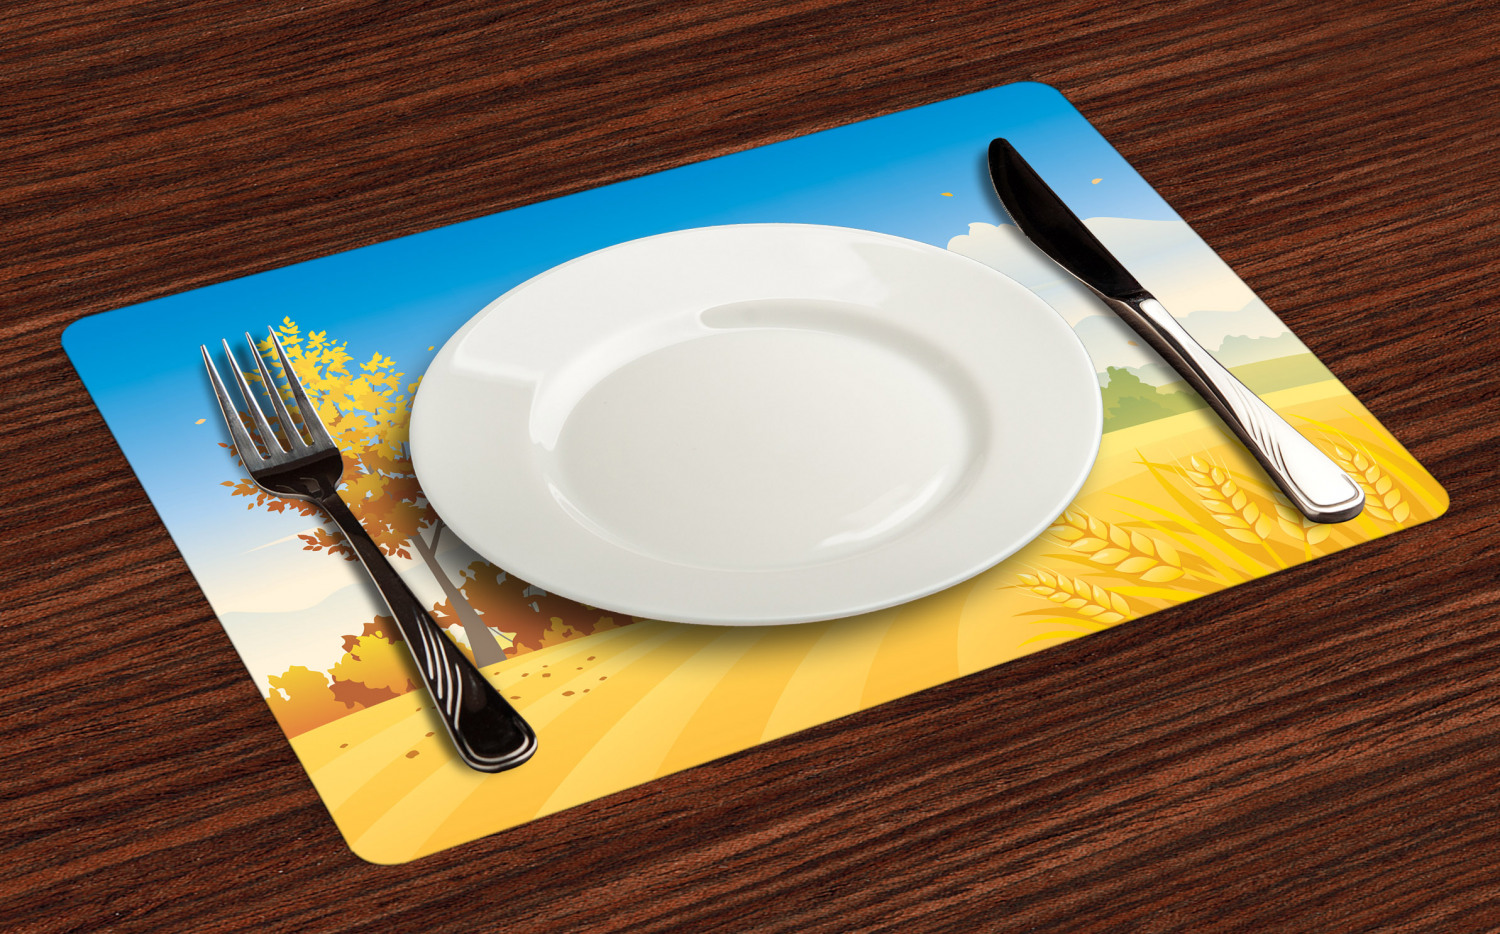 Ambesonne-Fabric-Place-Mats-Set-of-4-Placemats-for-Dining-Room-and-Kitchen-Table thumbnail 77